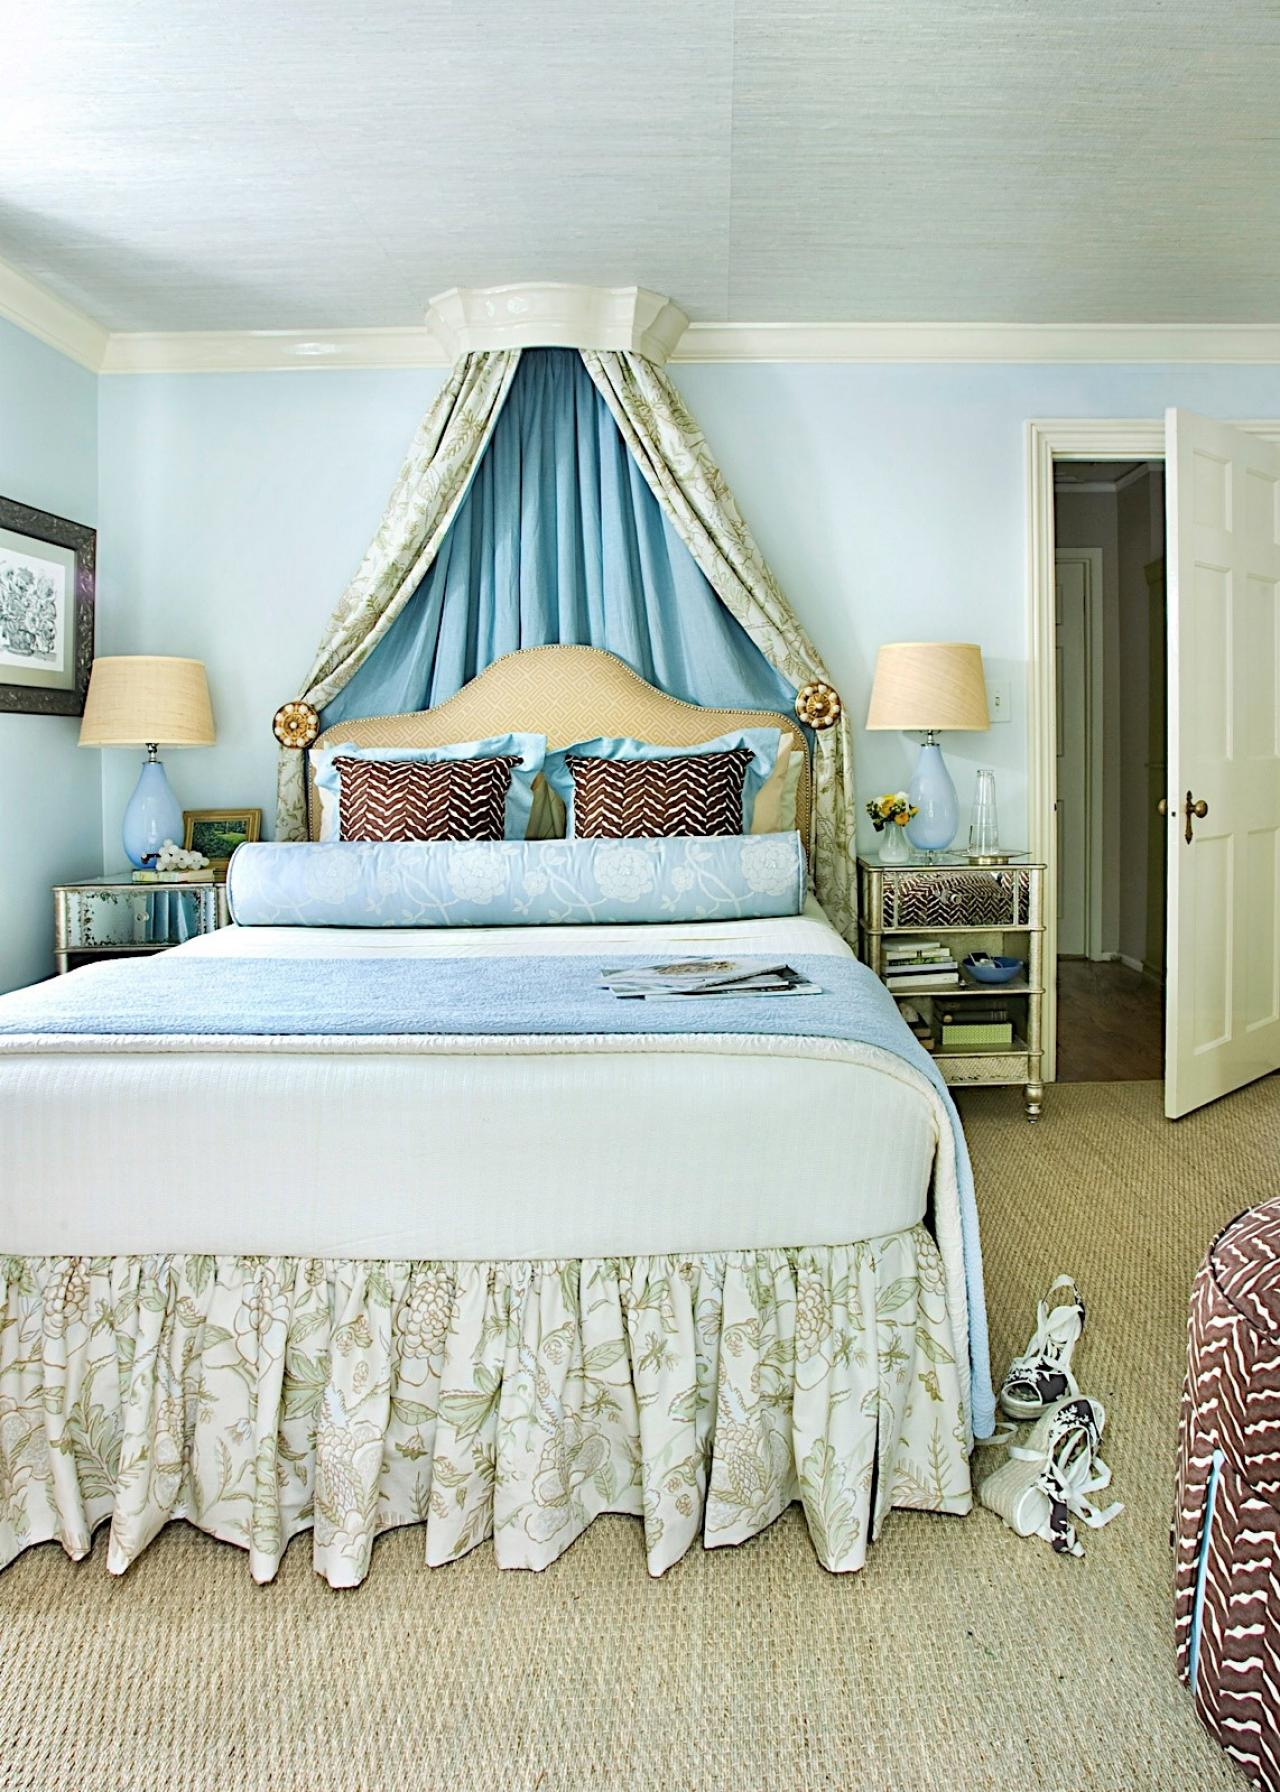 Blue And Green Master Bedroom With Floral Accents, Woven